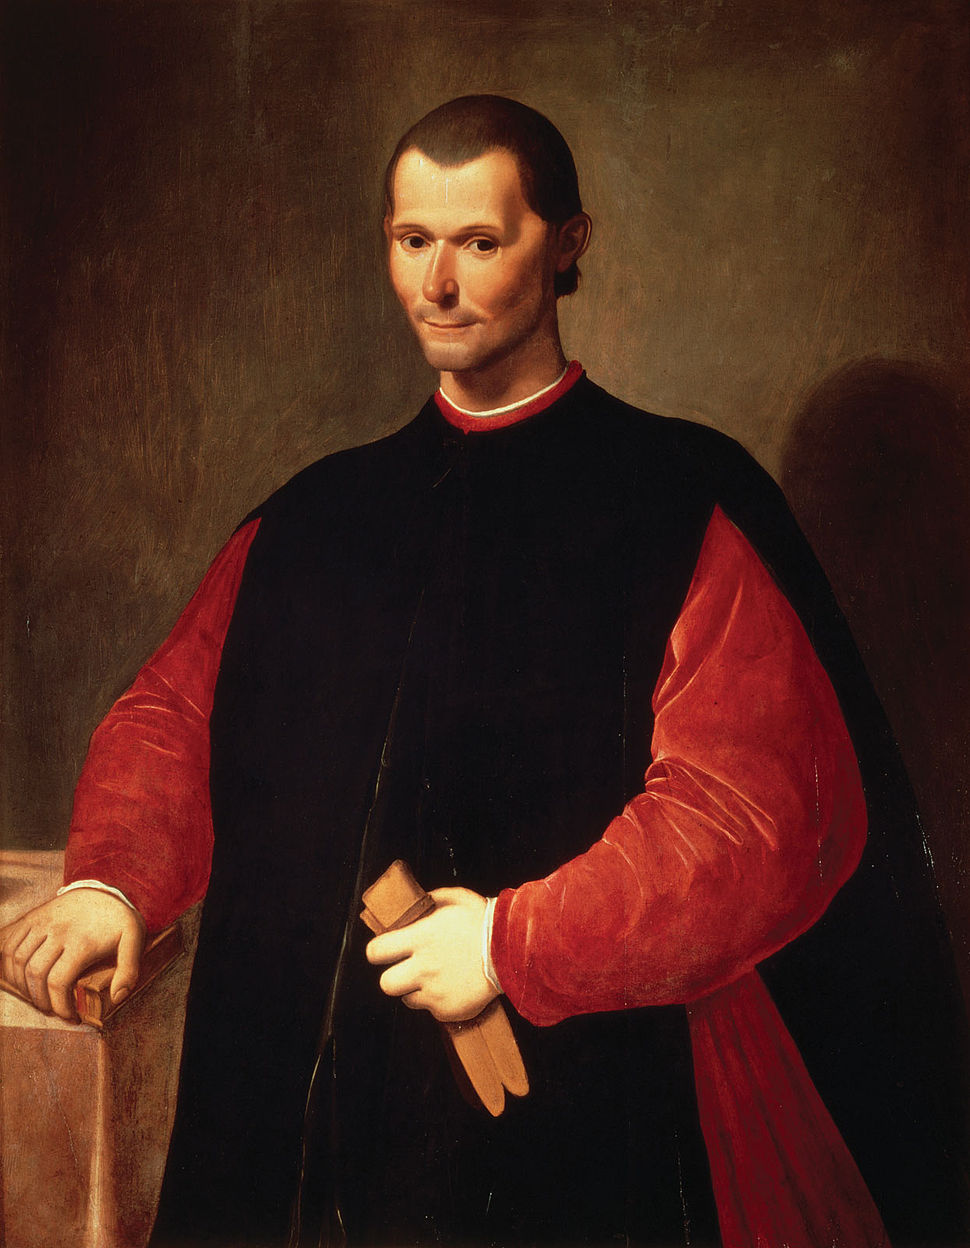 Portrait of Niccol%C3%B2 Machiavelli by Santi di Tito